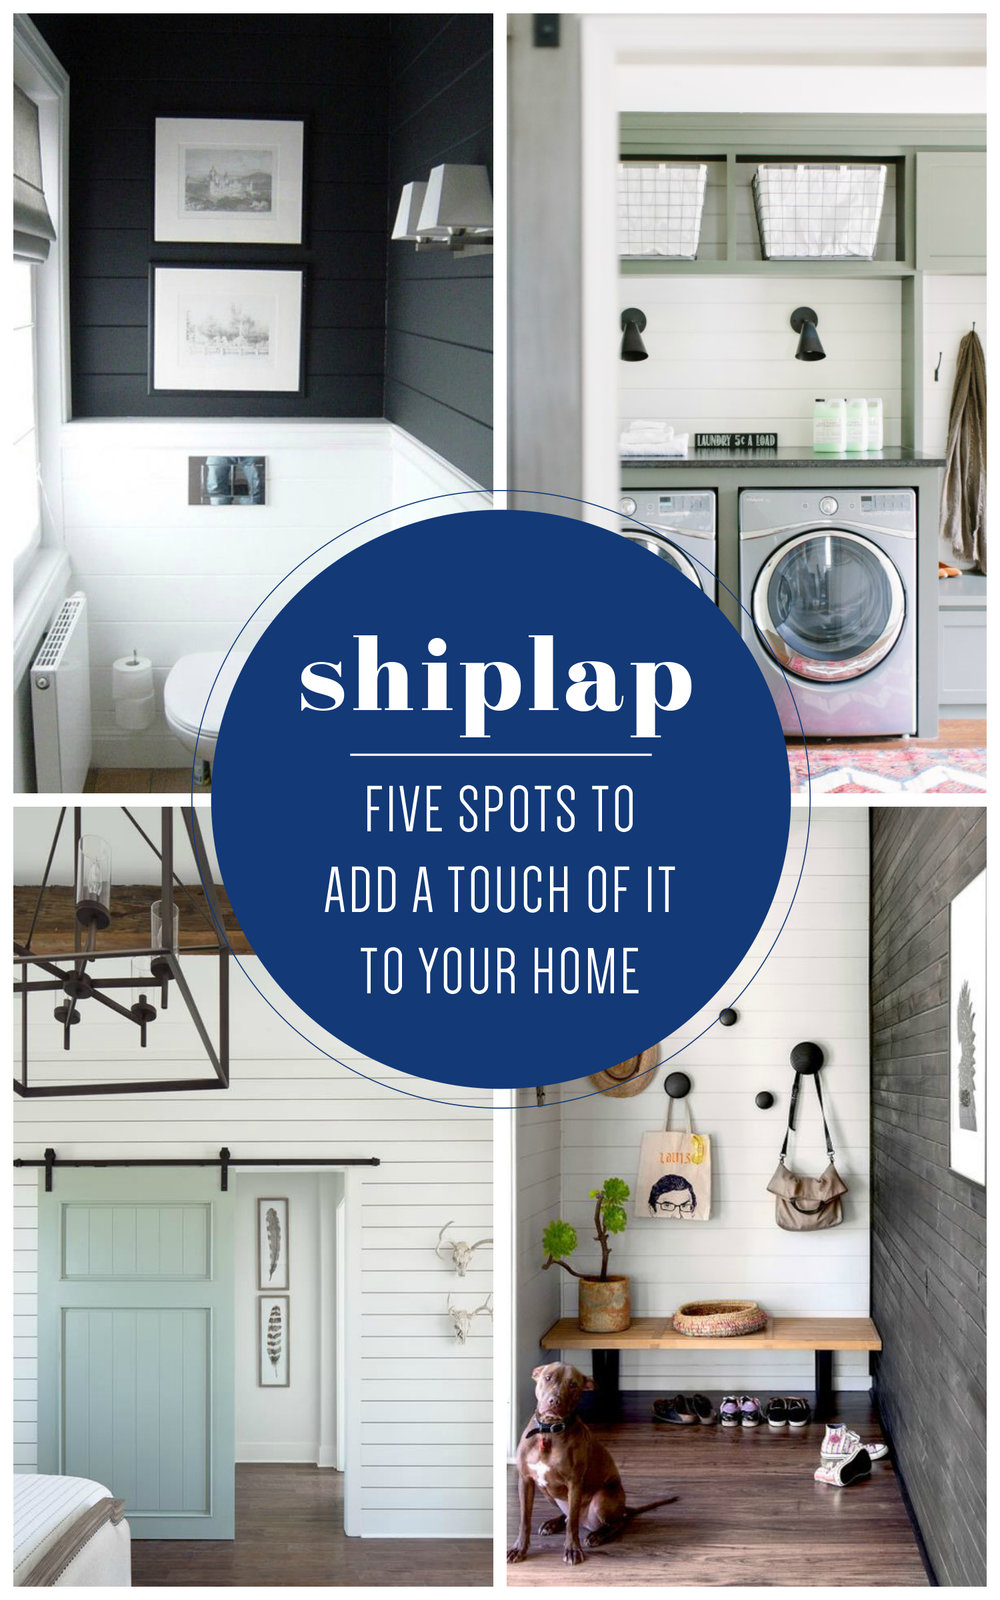 Five spots to add a touch of shiplap to your home: in bathrooms, entryways, laundry roomss, bedrooms, and fireplaces. Add some Fixer Upper style to your home!